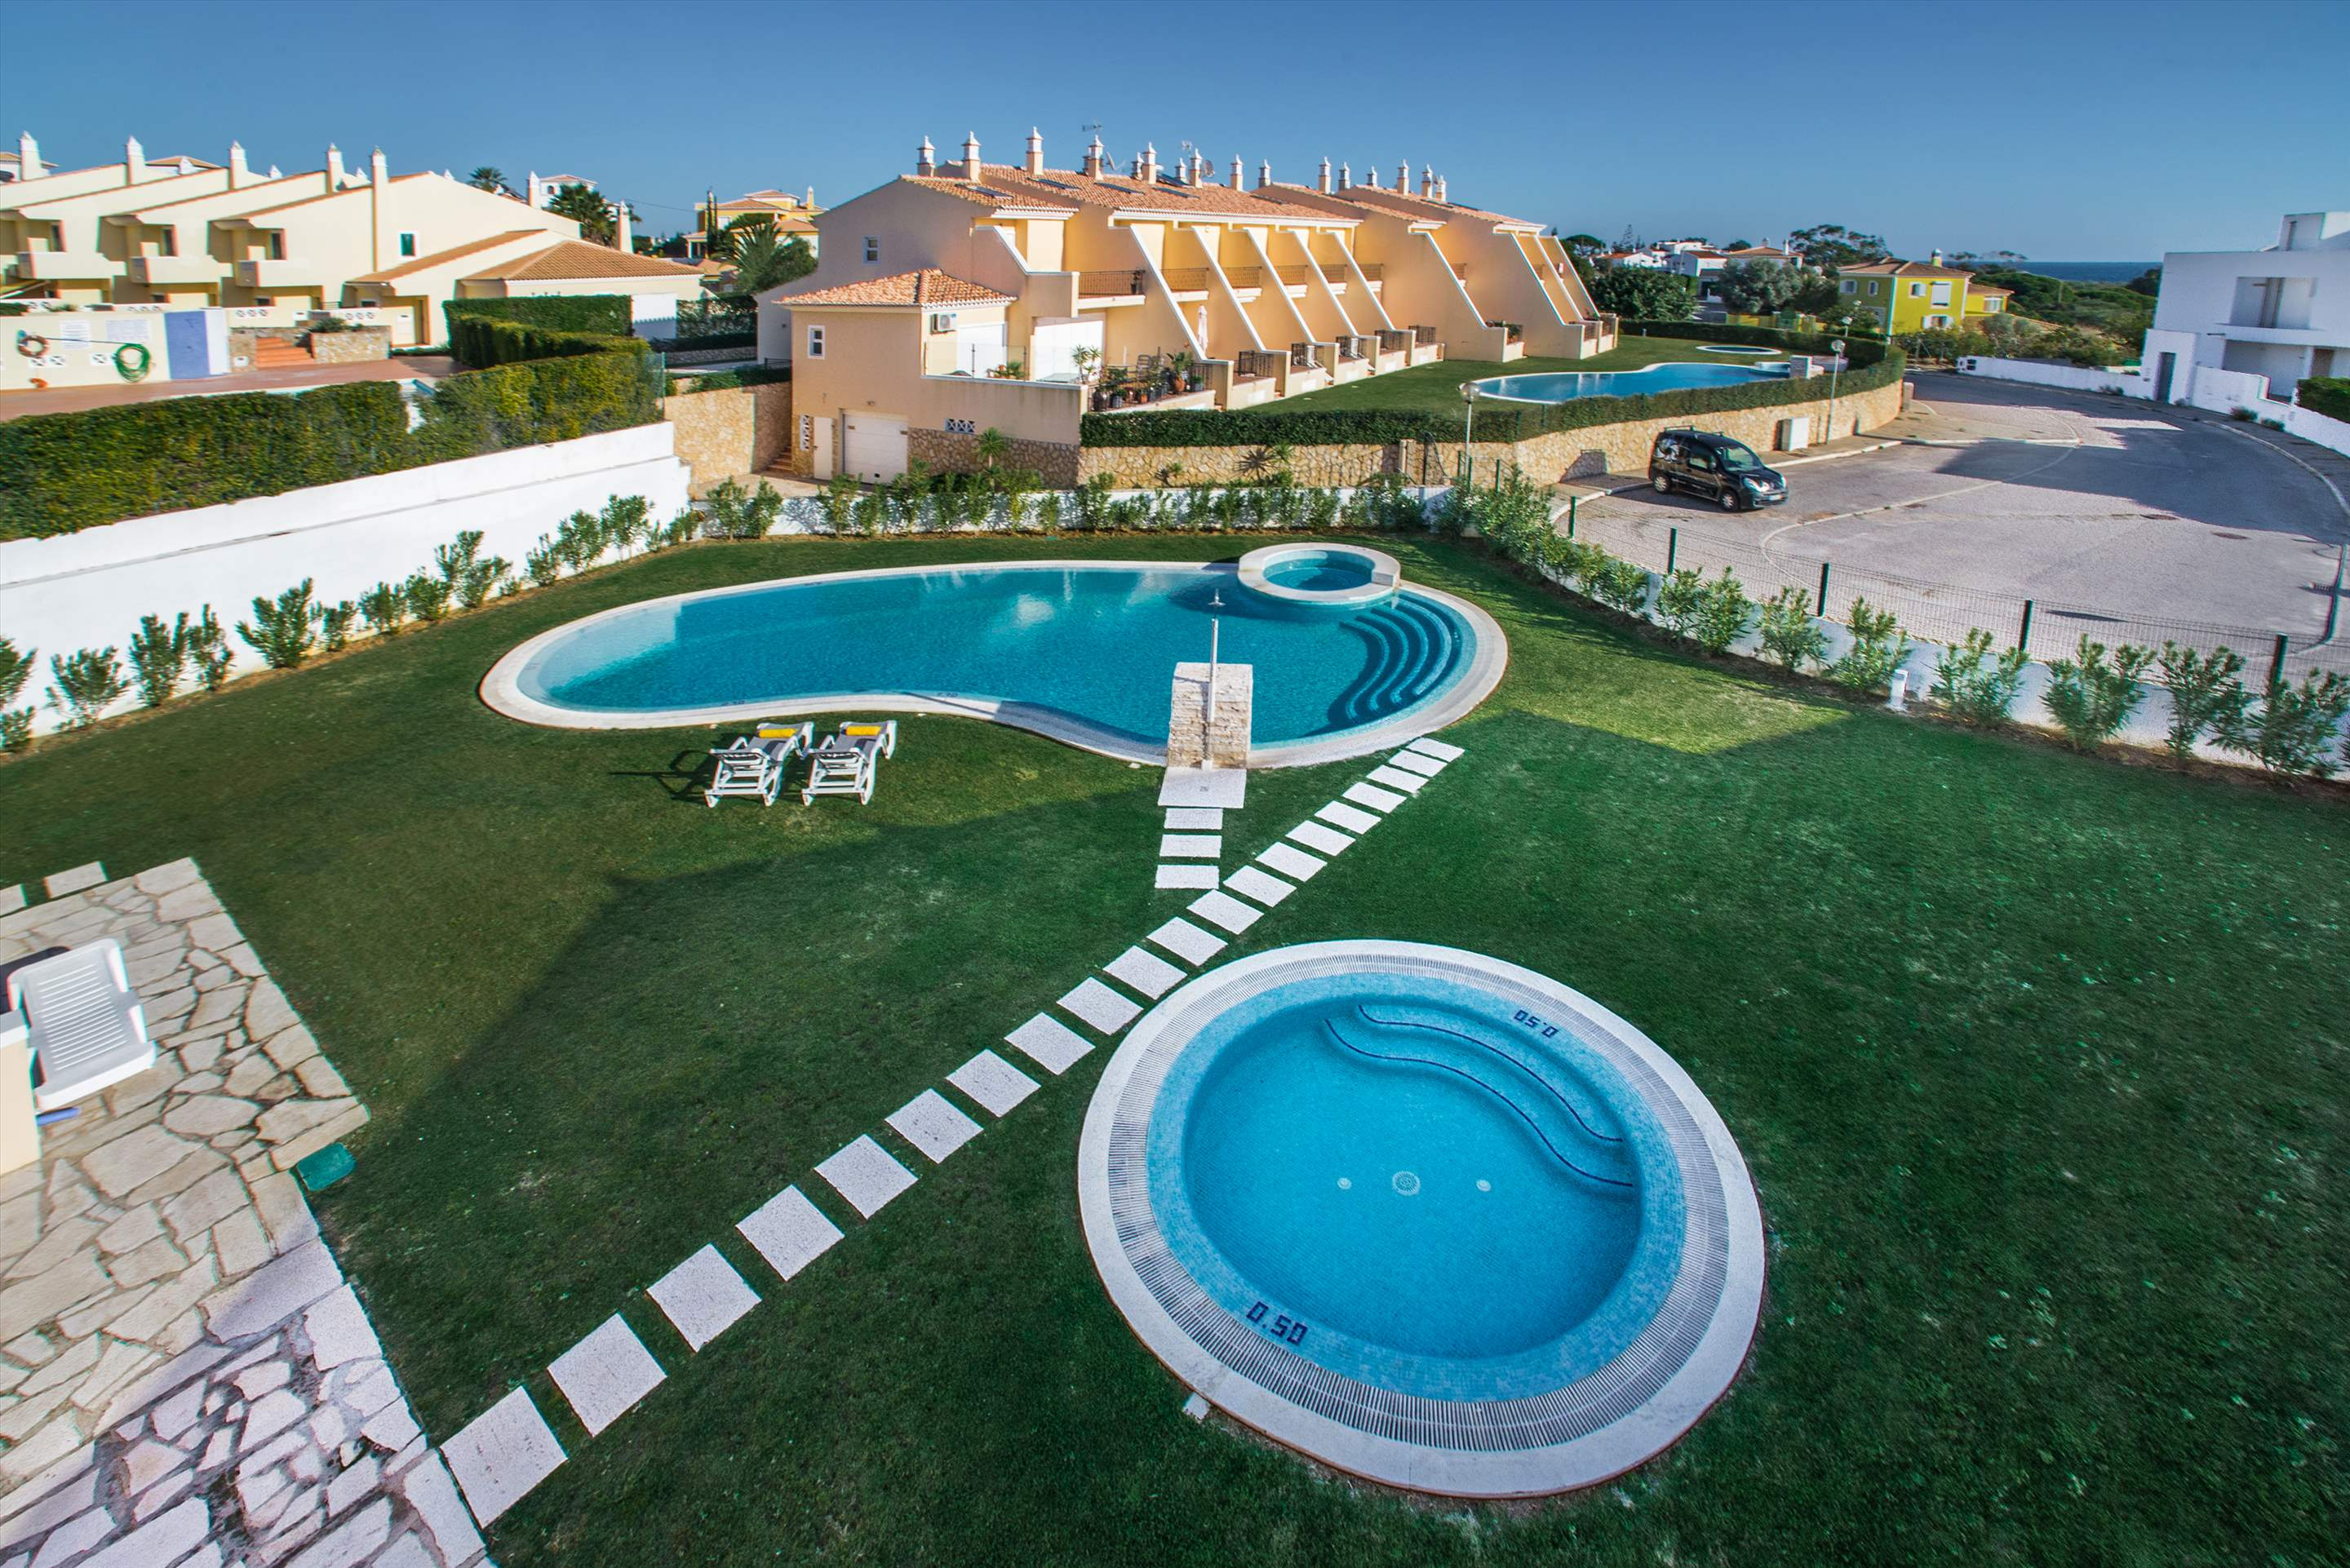 Townhouse Rosal 'D', 2 bedroom villa in Gale, Vale da Parra and Guia, Algarve Photo #14